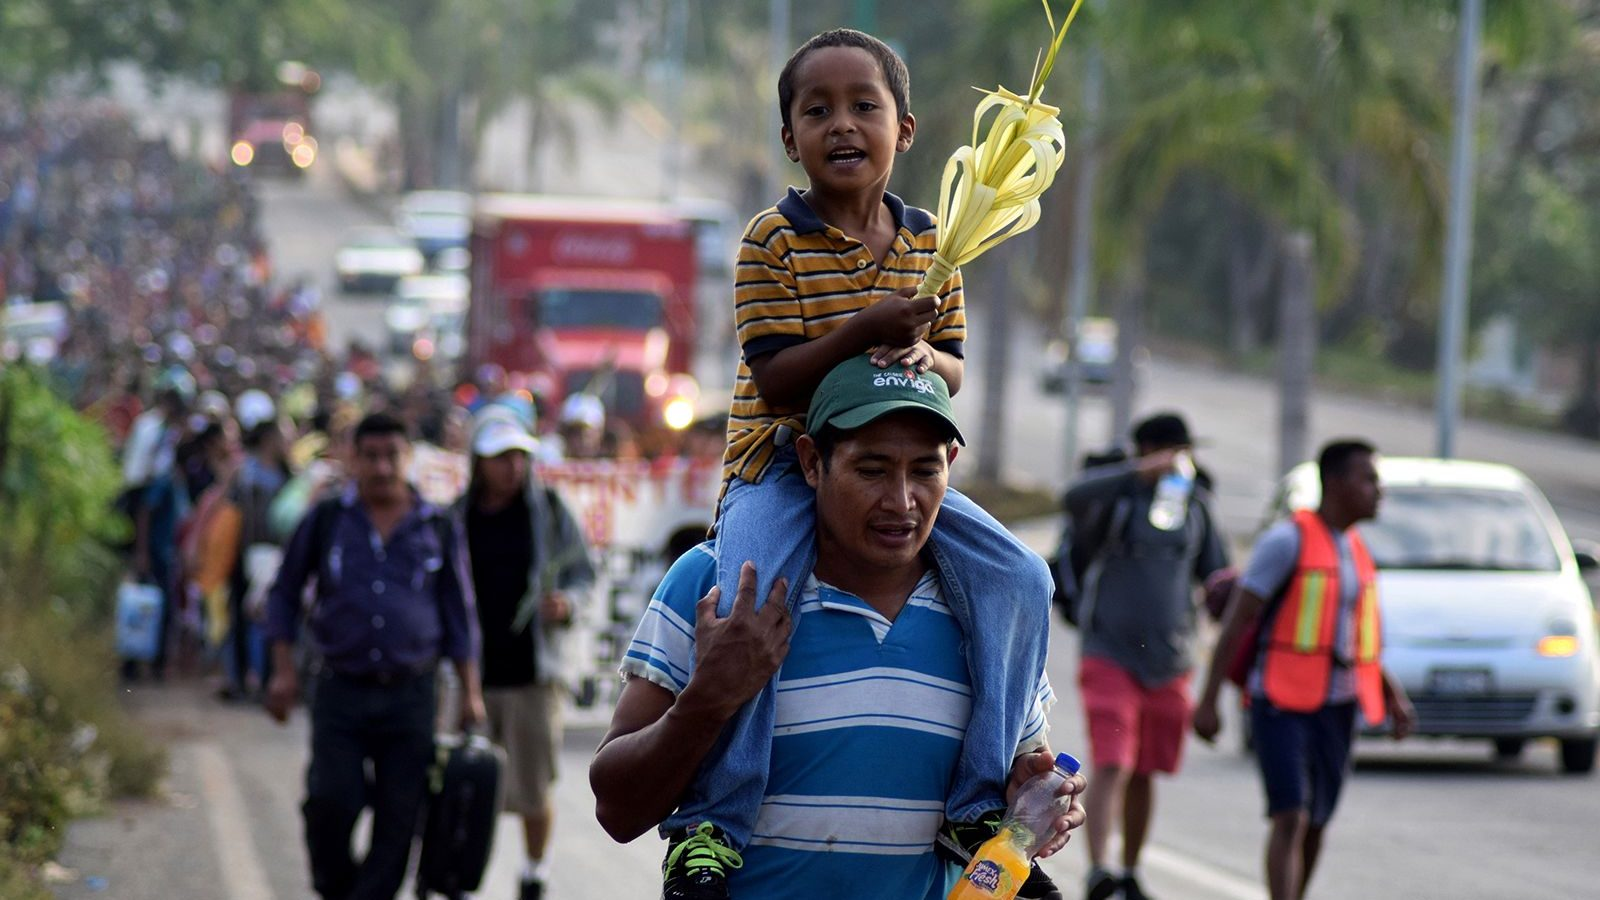 Hundreds of Central Americans take part in a Via Crucis on Palm Sunday in Tapachula